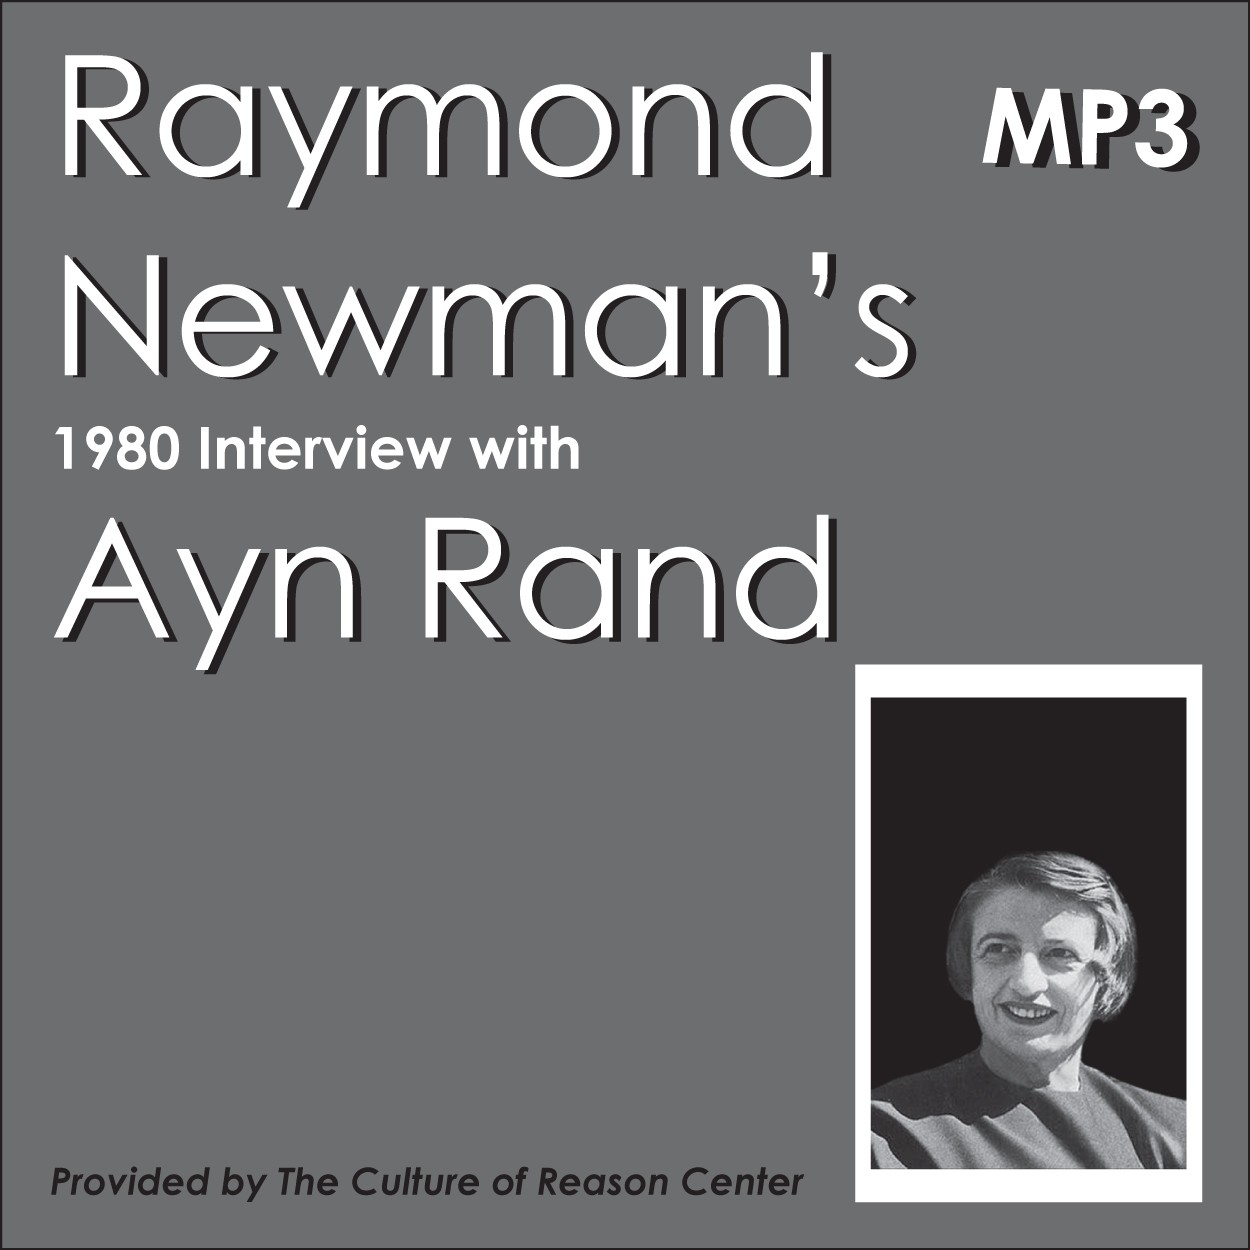 ayn rand and the idea of capitalism democracy and objectivism Ayn rand's philosophy of objectivism influenced three generations of business and political leaders too bad it's a total crock.